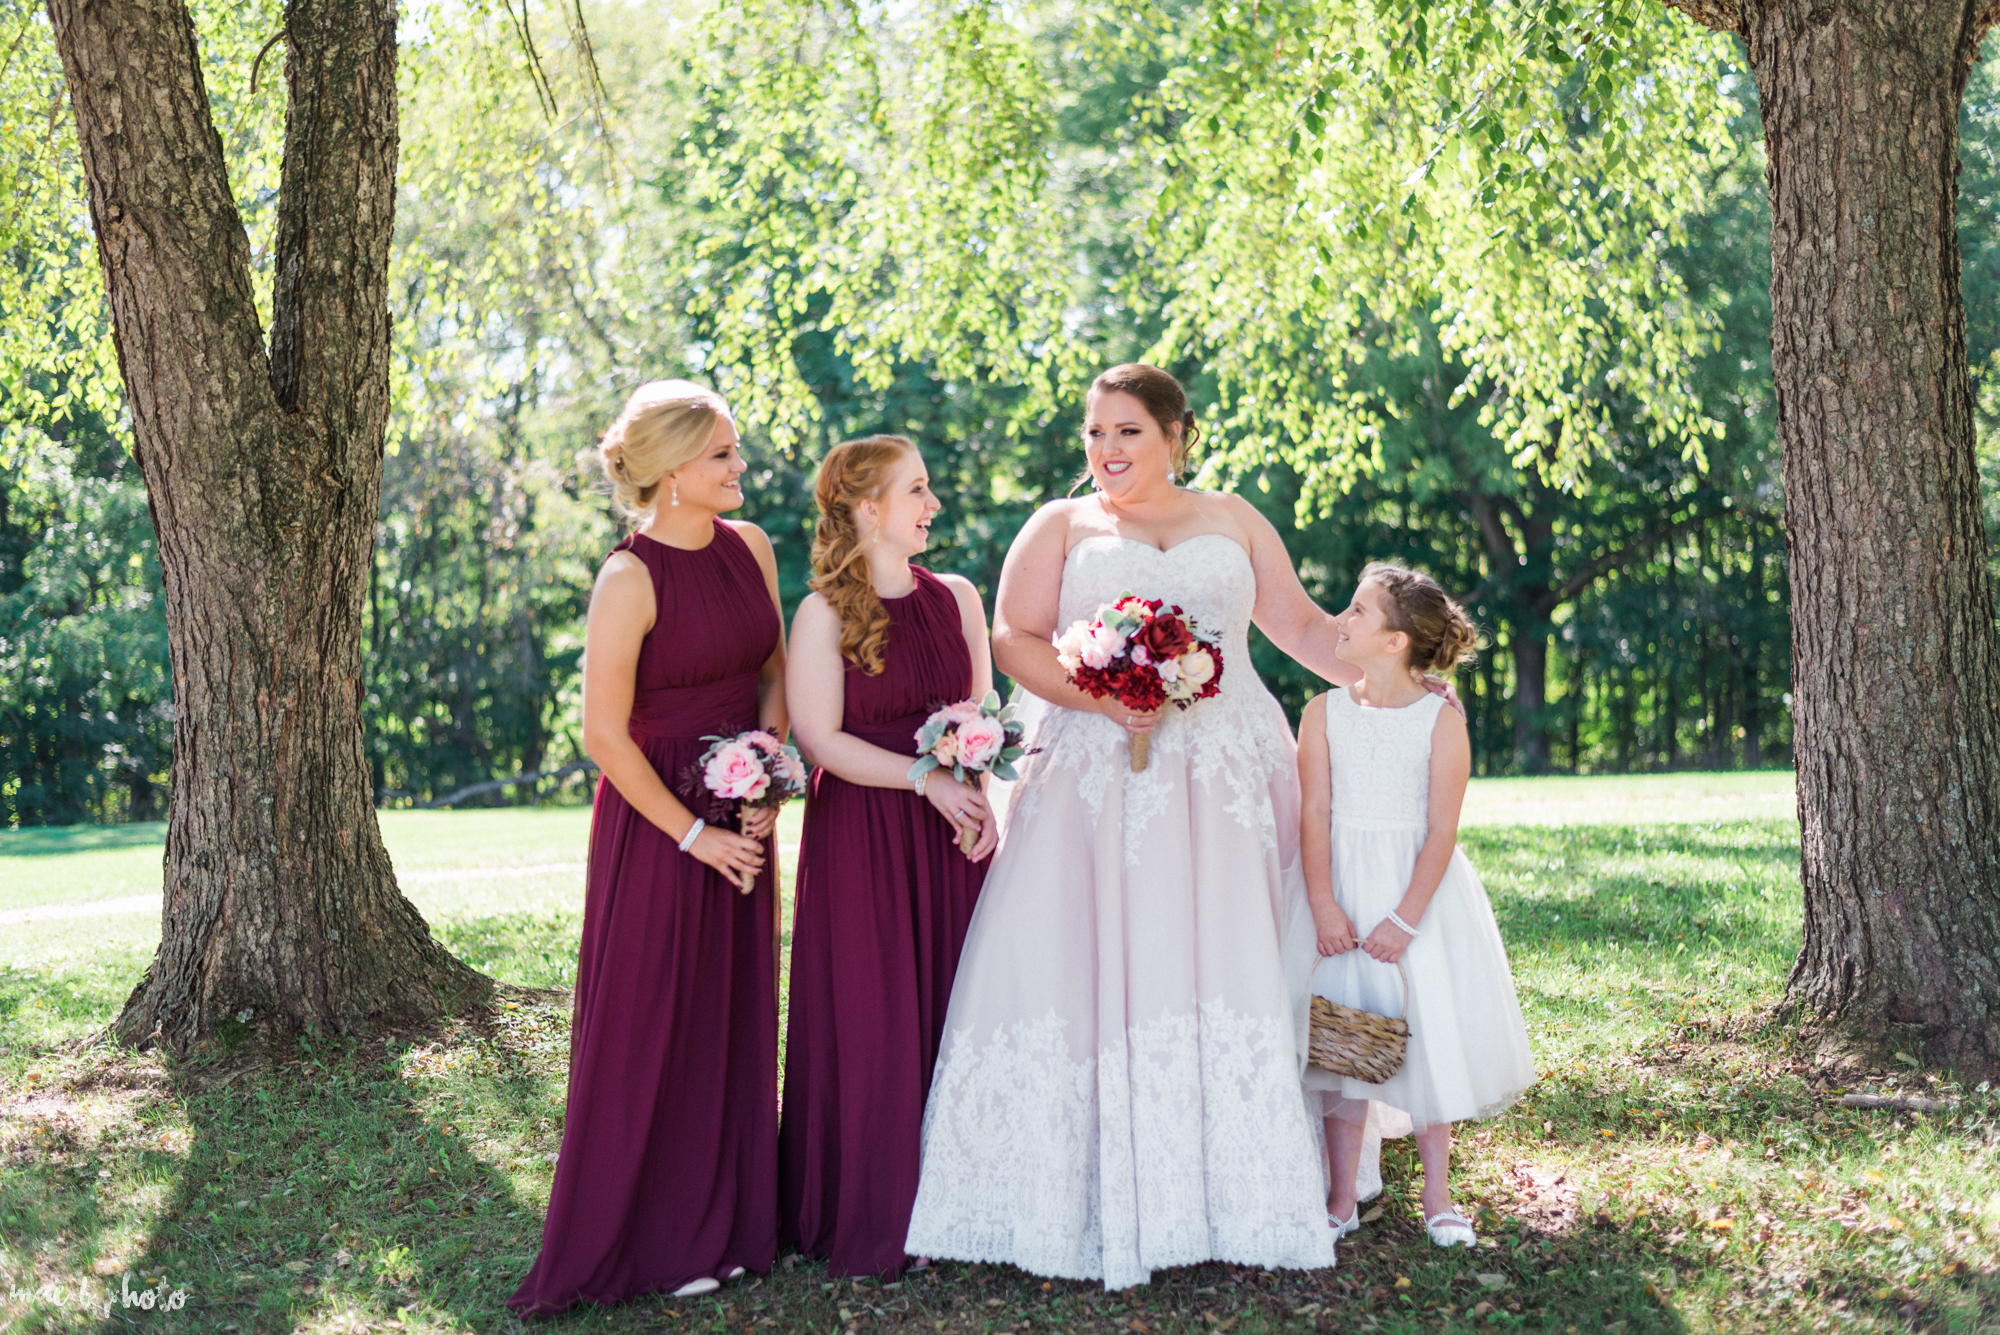 Amber & Kyle's Rustic Barn Wedding at SNPJ in Enon Valley, PA by Mae B Photo-51.jpg